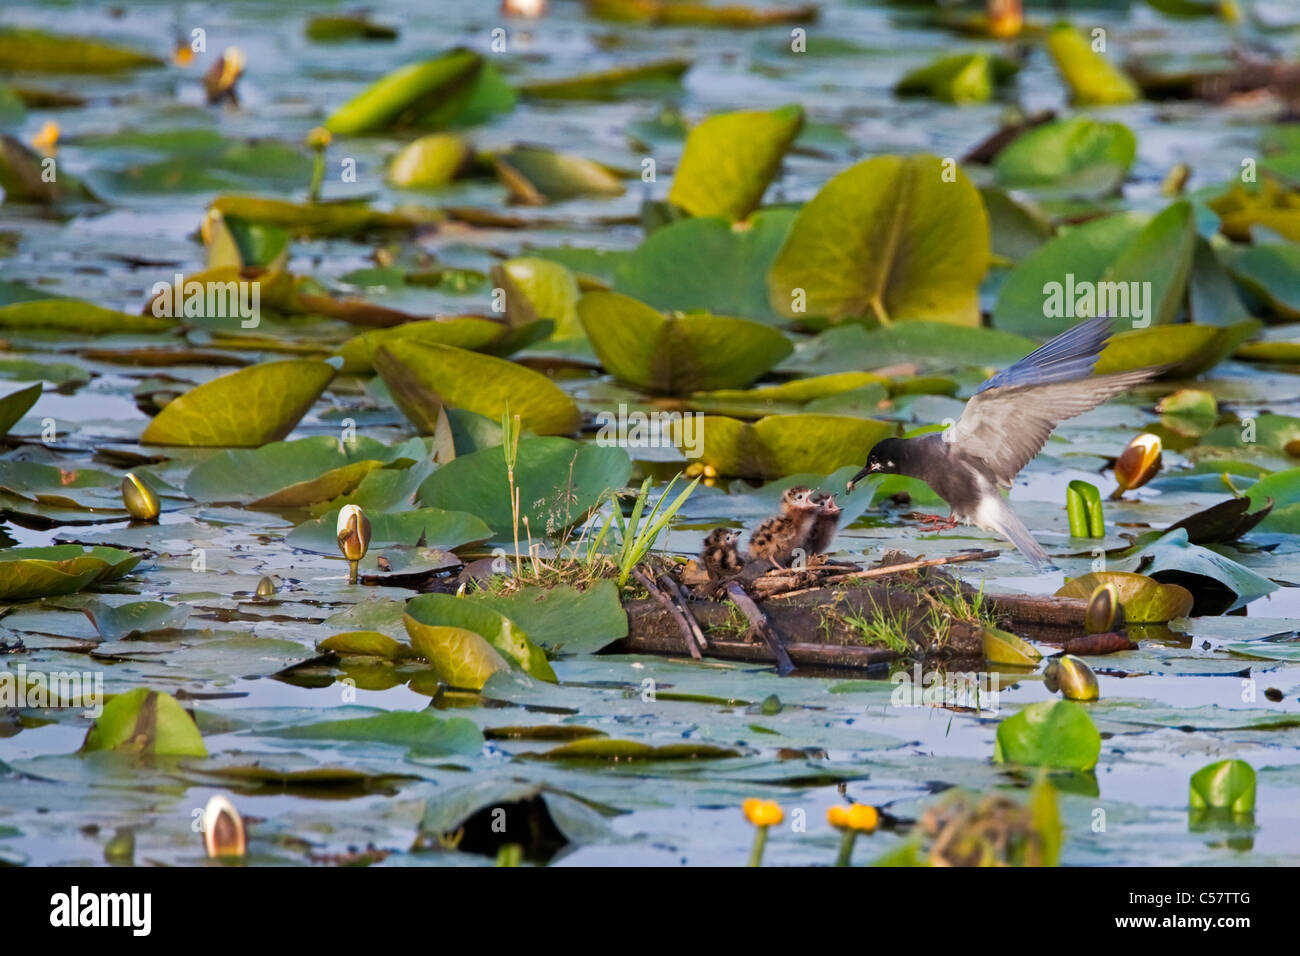 The Netherlands, Sluis, National Park called Zouweboezem. Black Terns, Chlidonias niger, breeding. Feeding young - Stock Image